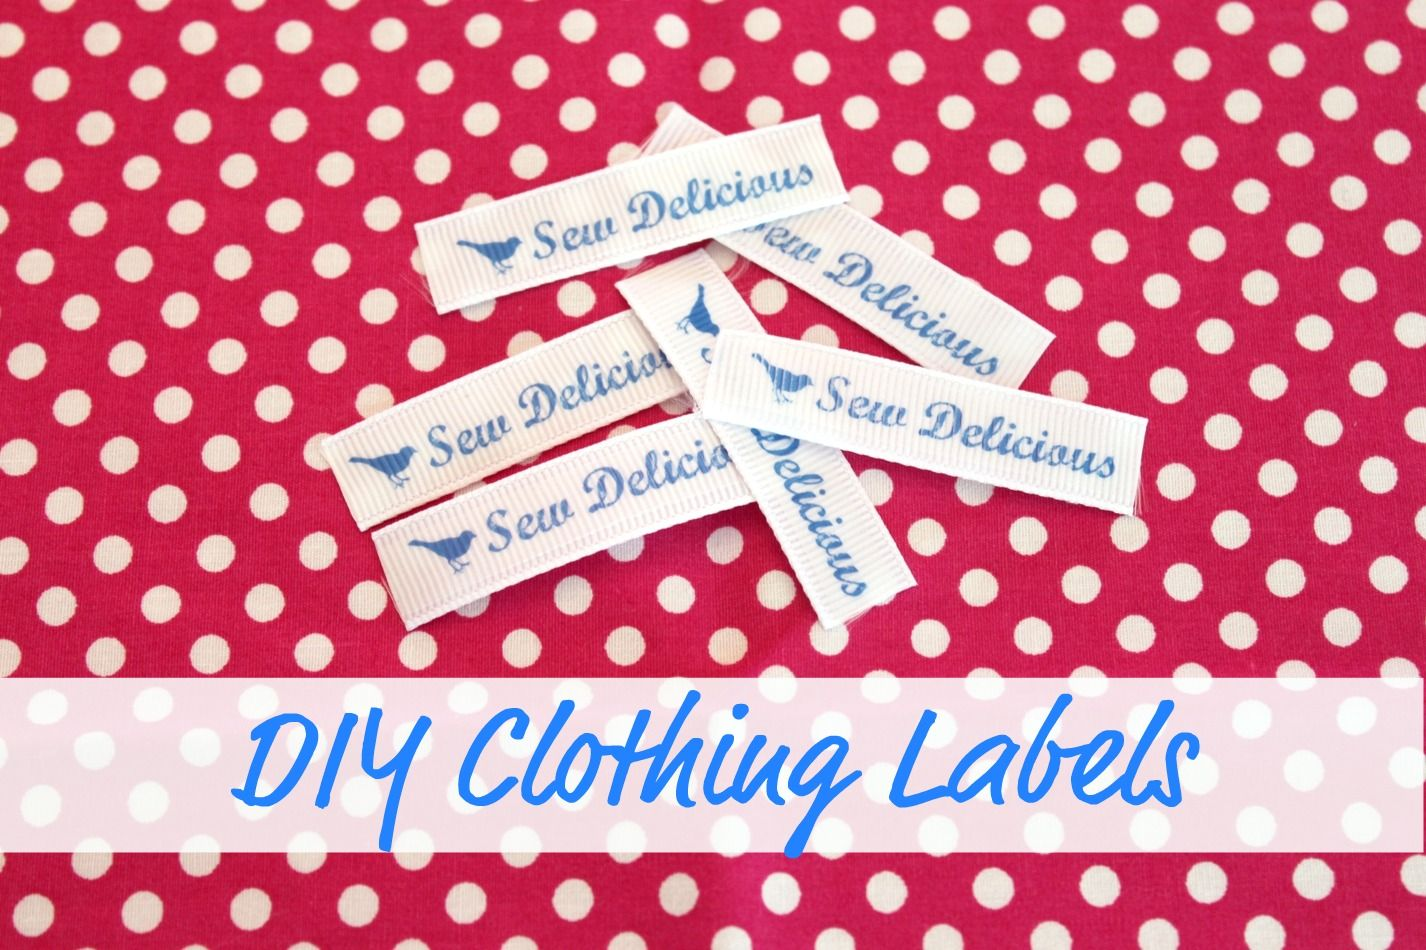 Labels: DIY Clothing Labels On Pinterest